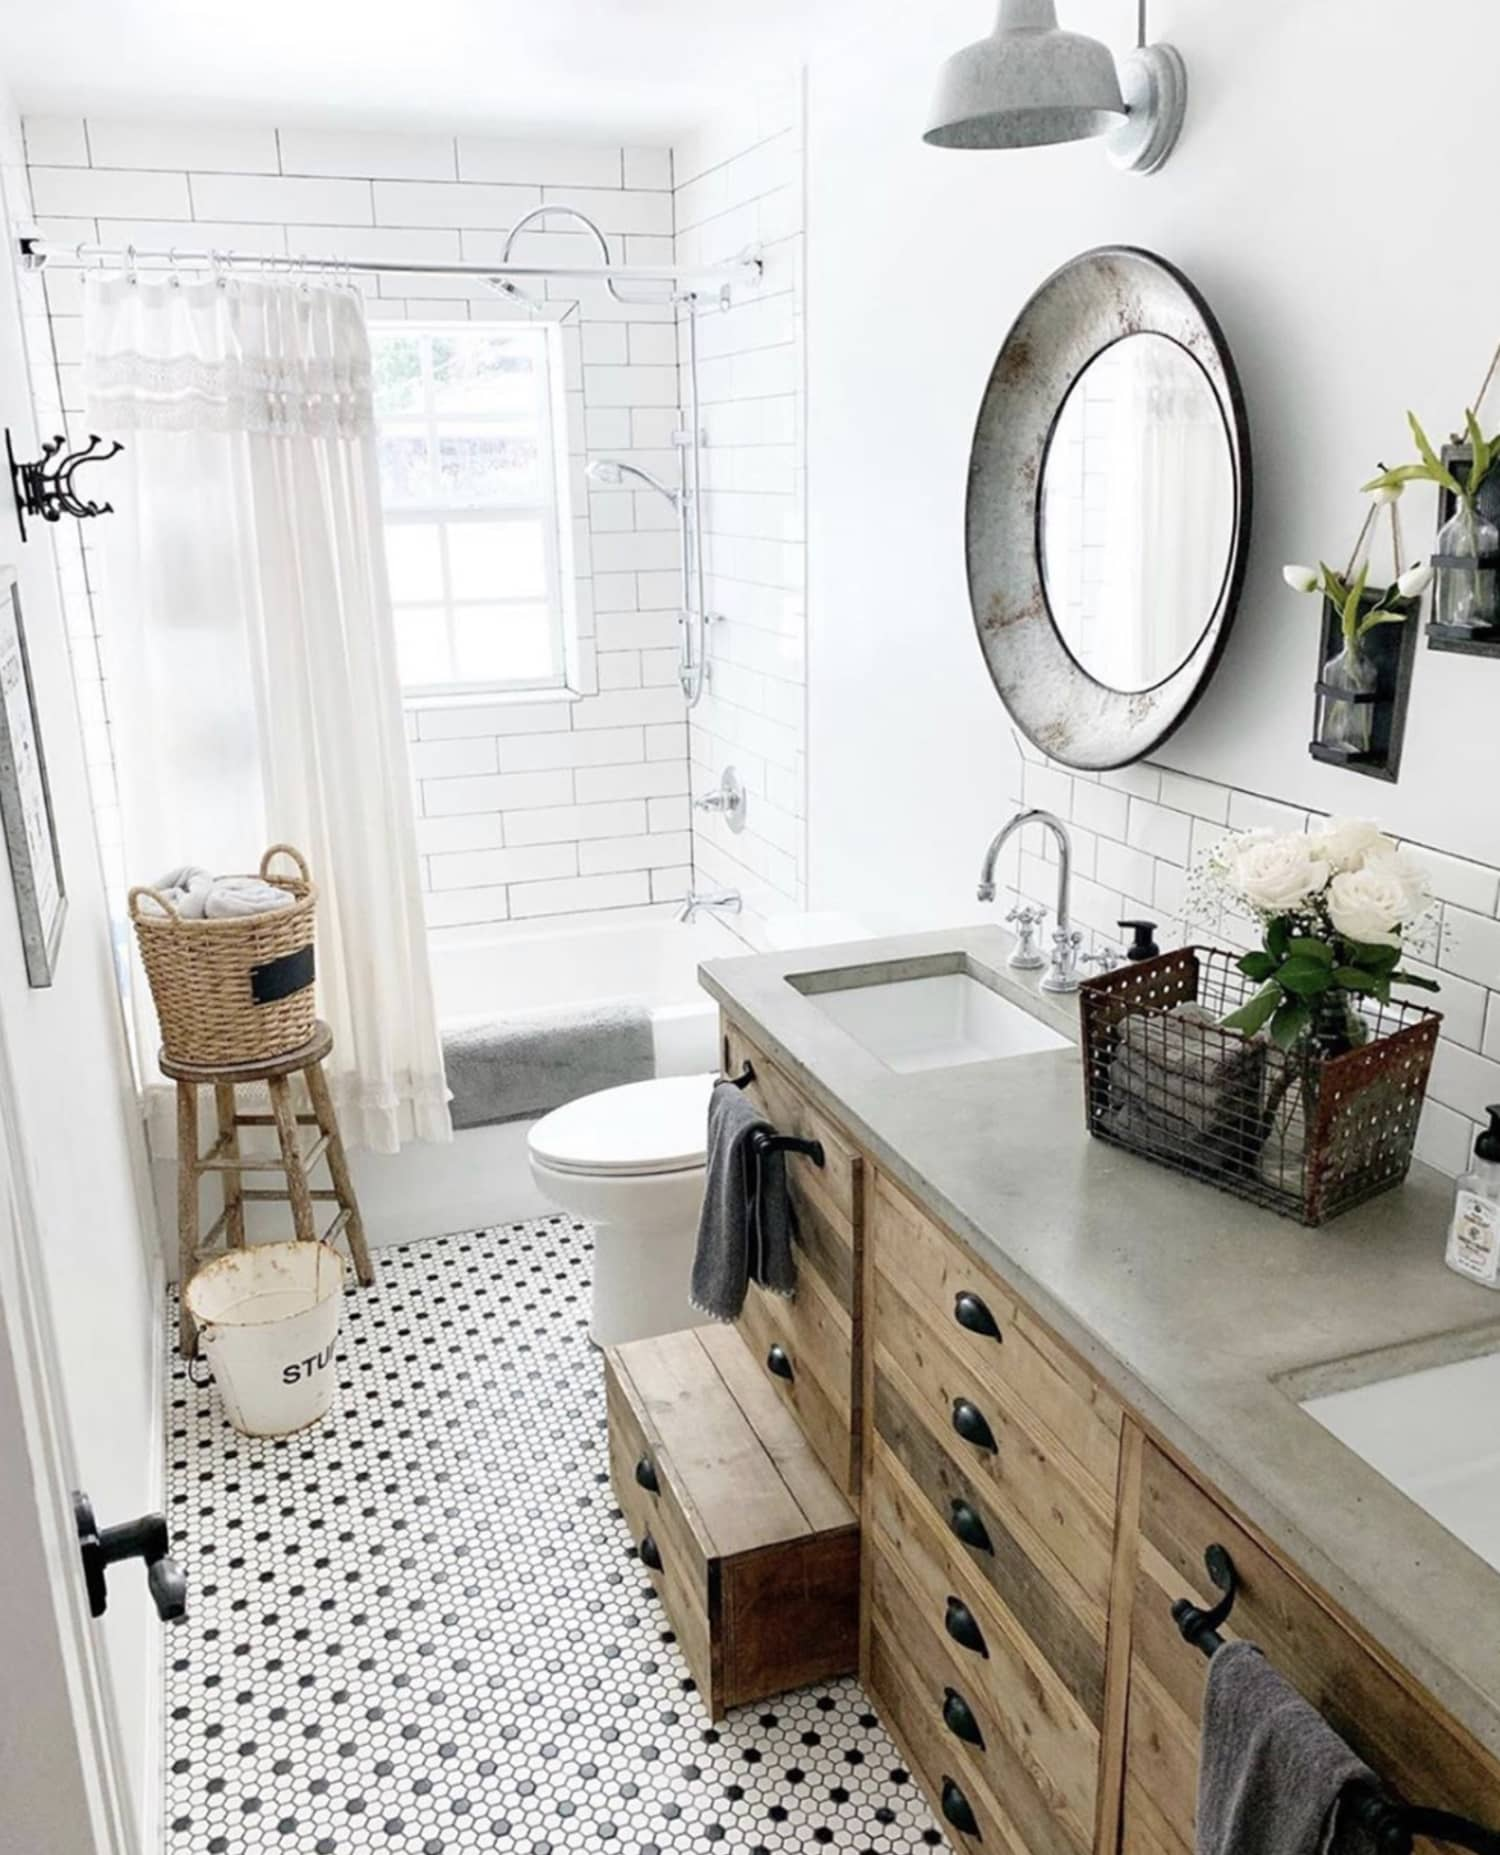 The Best Farmhouse Bathroom Decor - Farmhouse Bathroom ... on Farmhouse Bathroom Ideas  id=37519